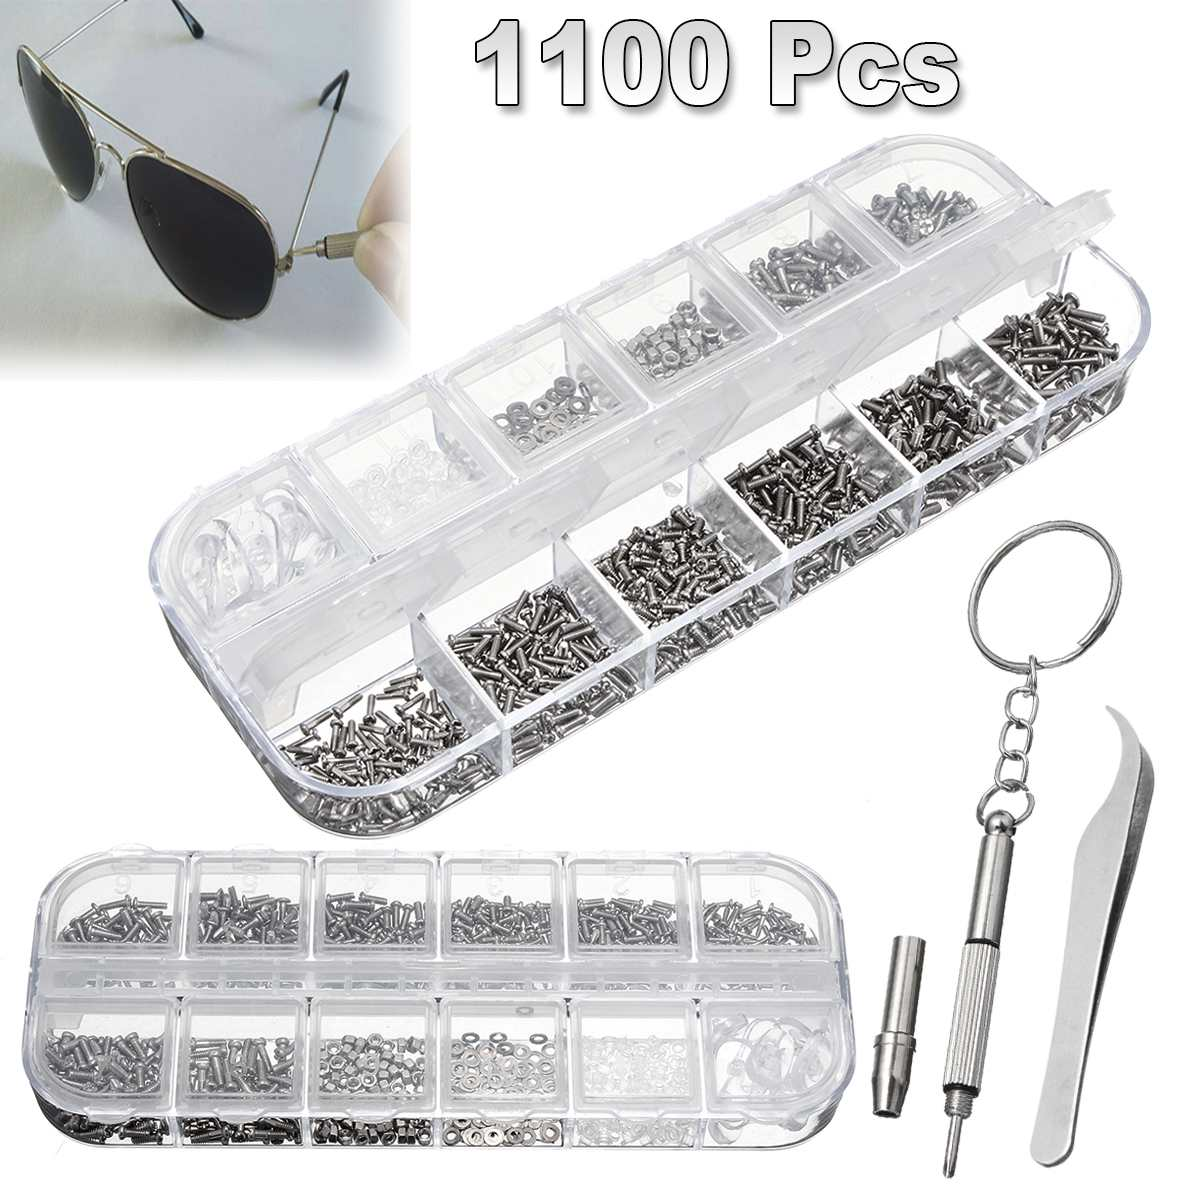 1100pcs Tiny Screws Stainless Kit Repair Part Tools For Watch Eye Glasses Clock Steel Small Screws Nuts Assortment1100pcs Tiny Screws Stainless Kit Repair Part Tools For Watch Eye Glasses Clock Steel Small Screws Nuts Assortment